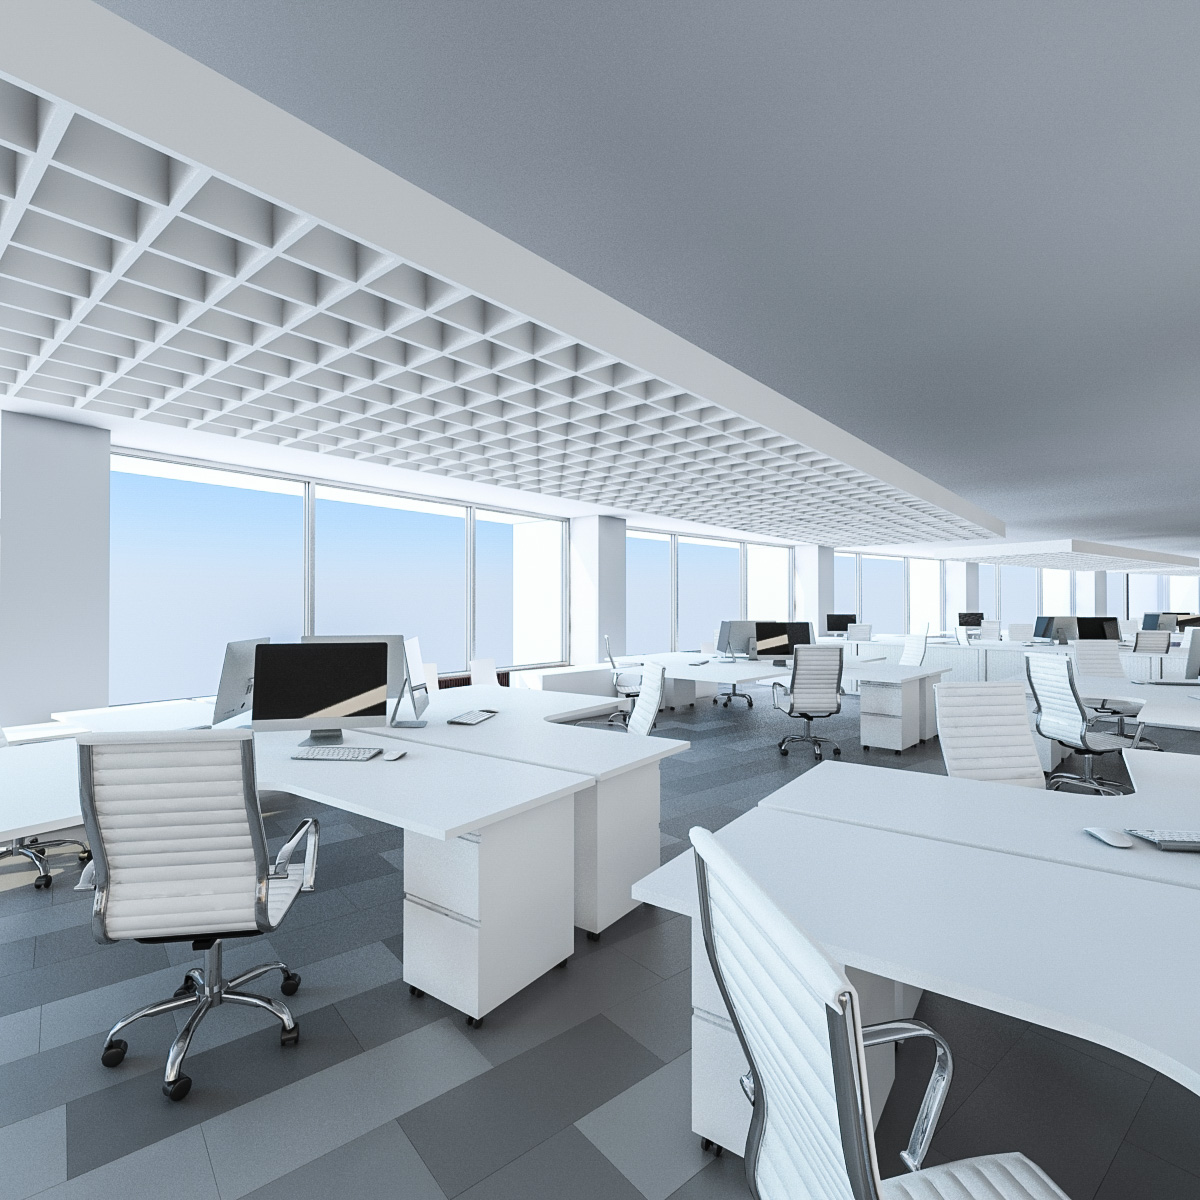 Office interior 3d model for Office design 3d